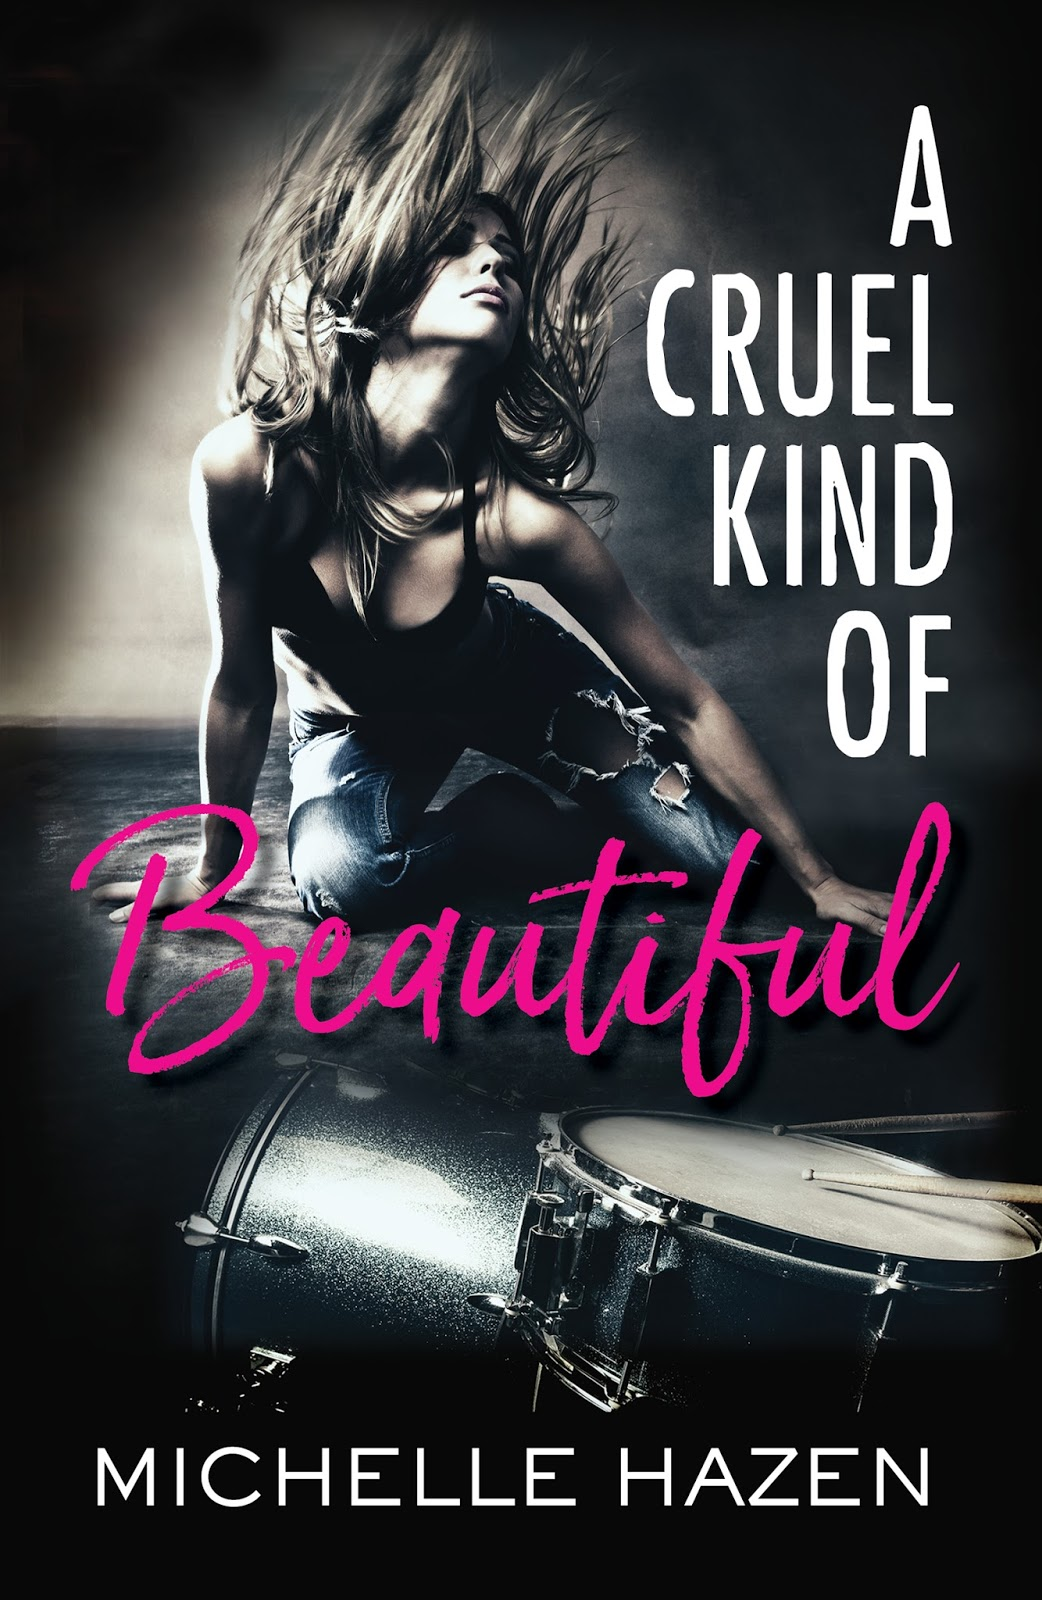 A Chick Who Reads: Book Blast A Cruel Kind Of Beautiful